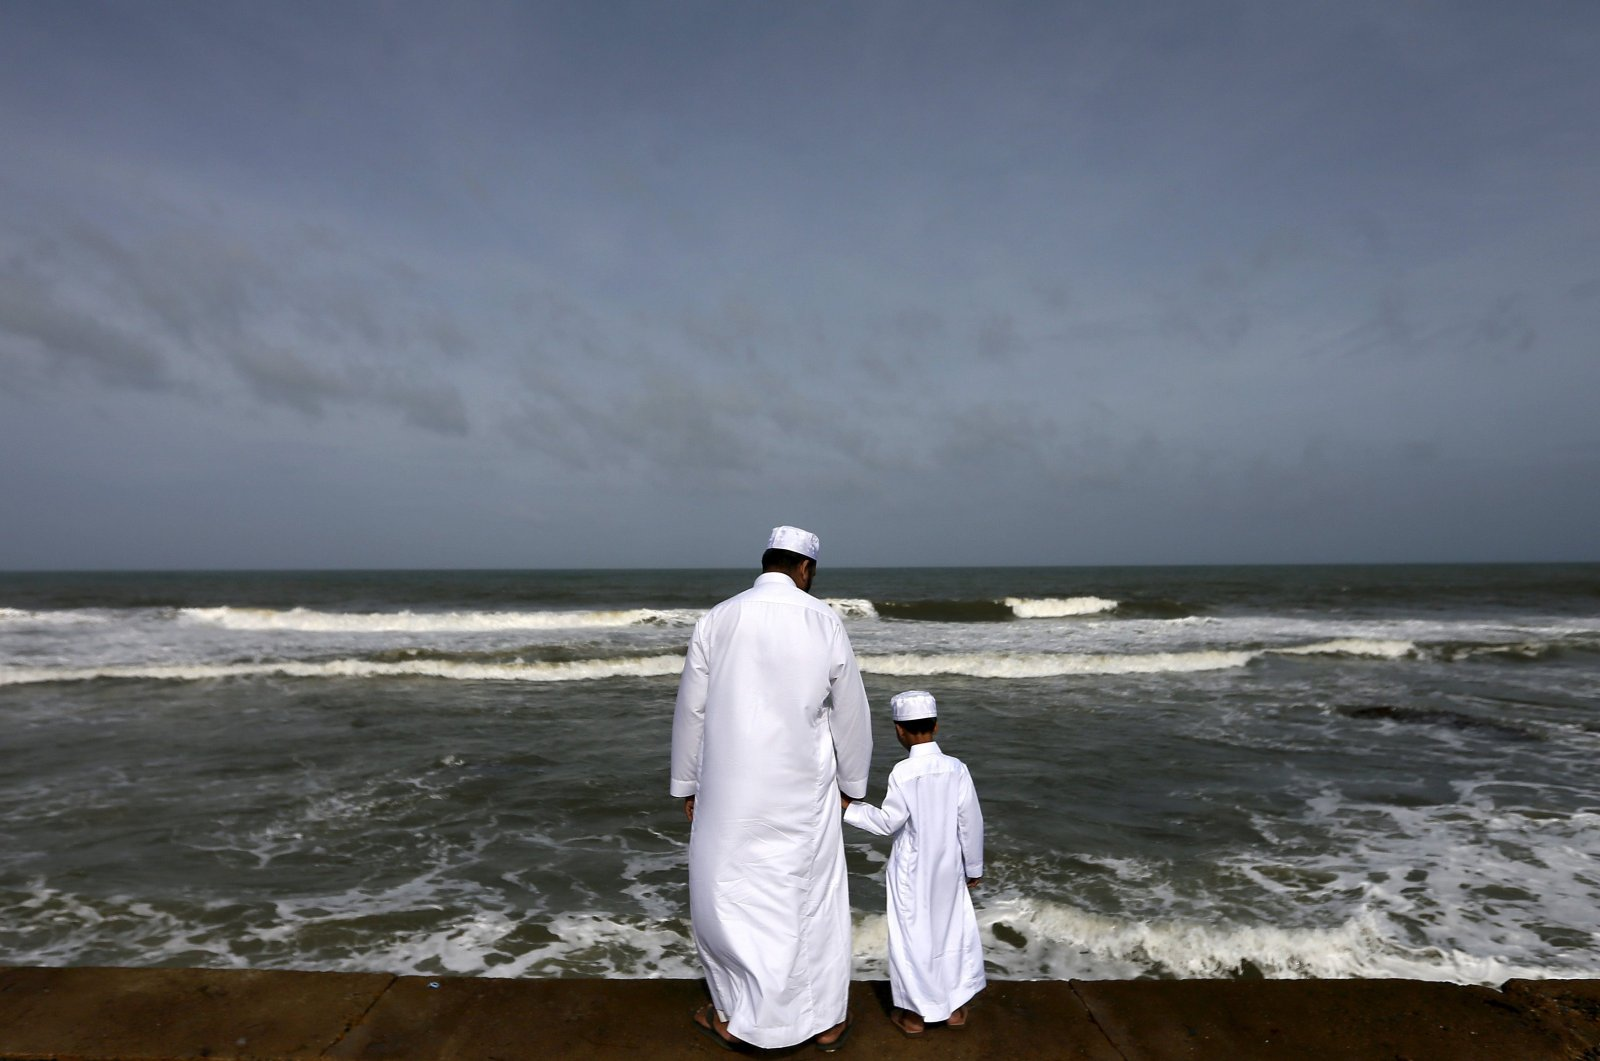 A Sri Lankan Muslim father and son stand in front of the sea during morning prayers of Ramadan Bayram, also known as Eid al-Fitr, celebrations that mark the end of Ramadan, in Colombo, Sri Lanka, July 18, 2015. (Reuters Photo)